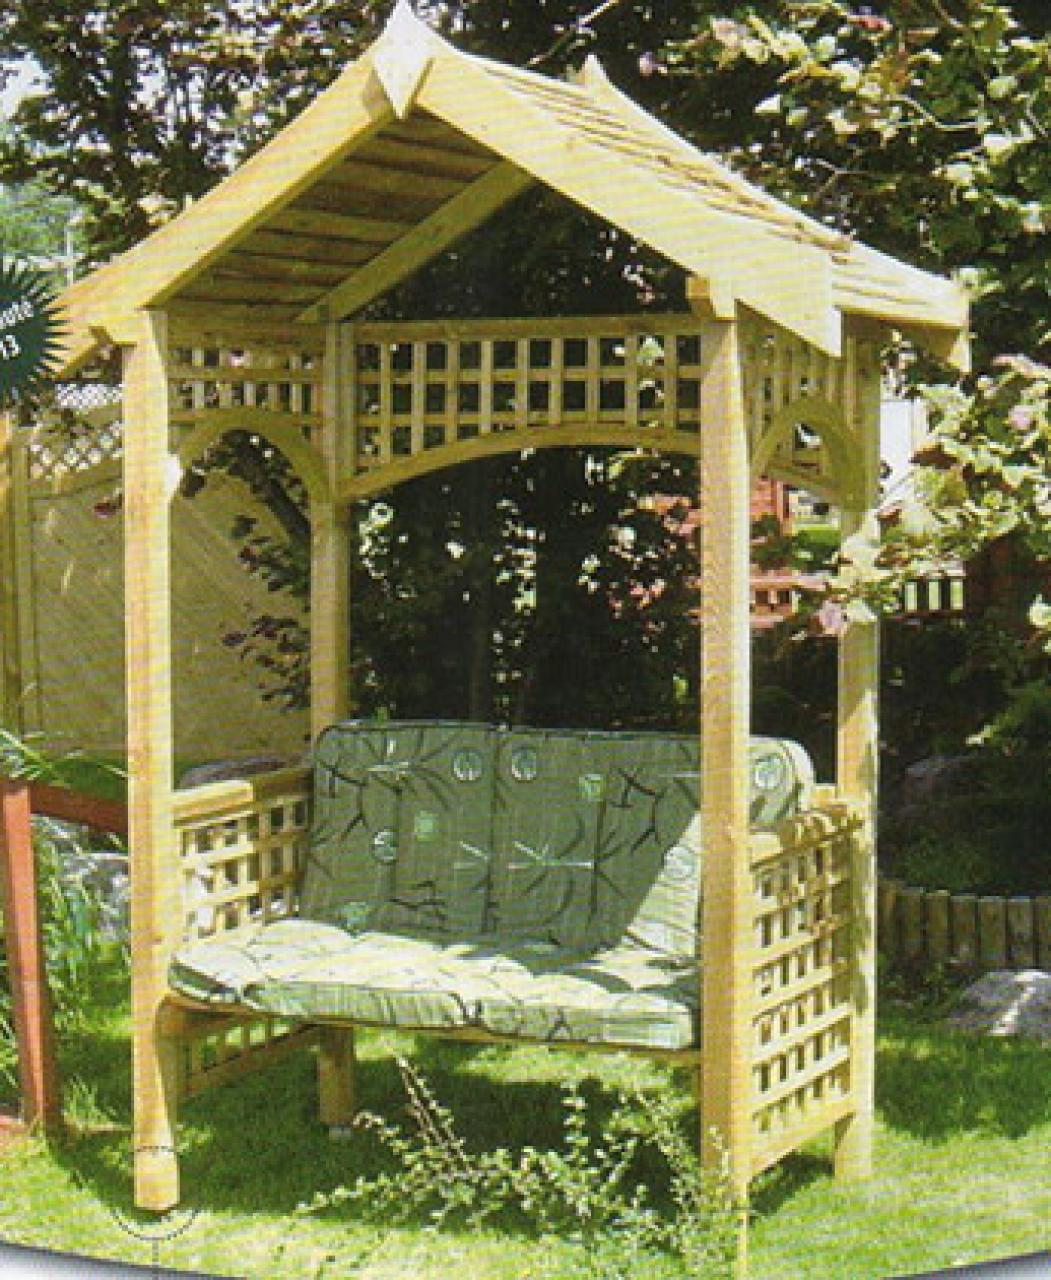 pergola style japonais avec banc coussin non fourni pergolas en bois 27 flbc. Black Bedroom Furniture Sets. Home Design Ideas